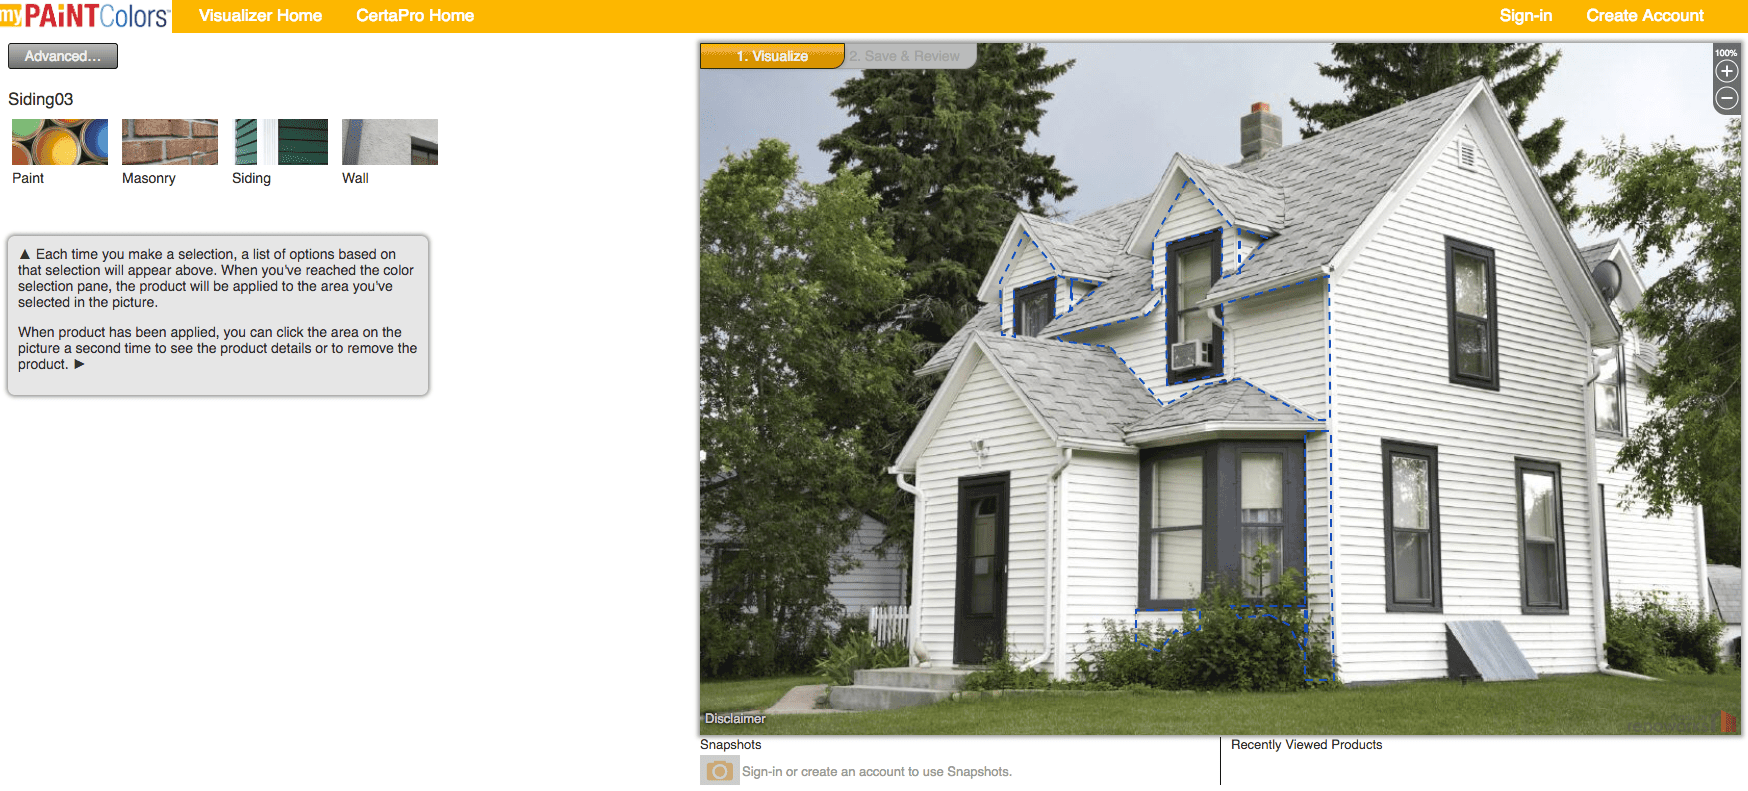 CertaPro My Paint Colors House exterior software